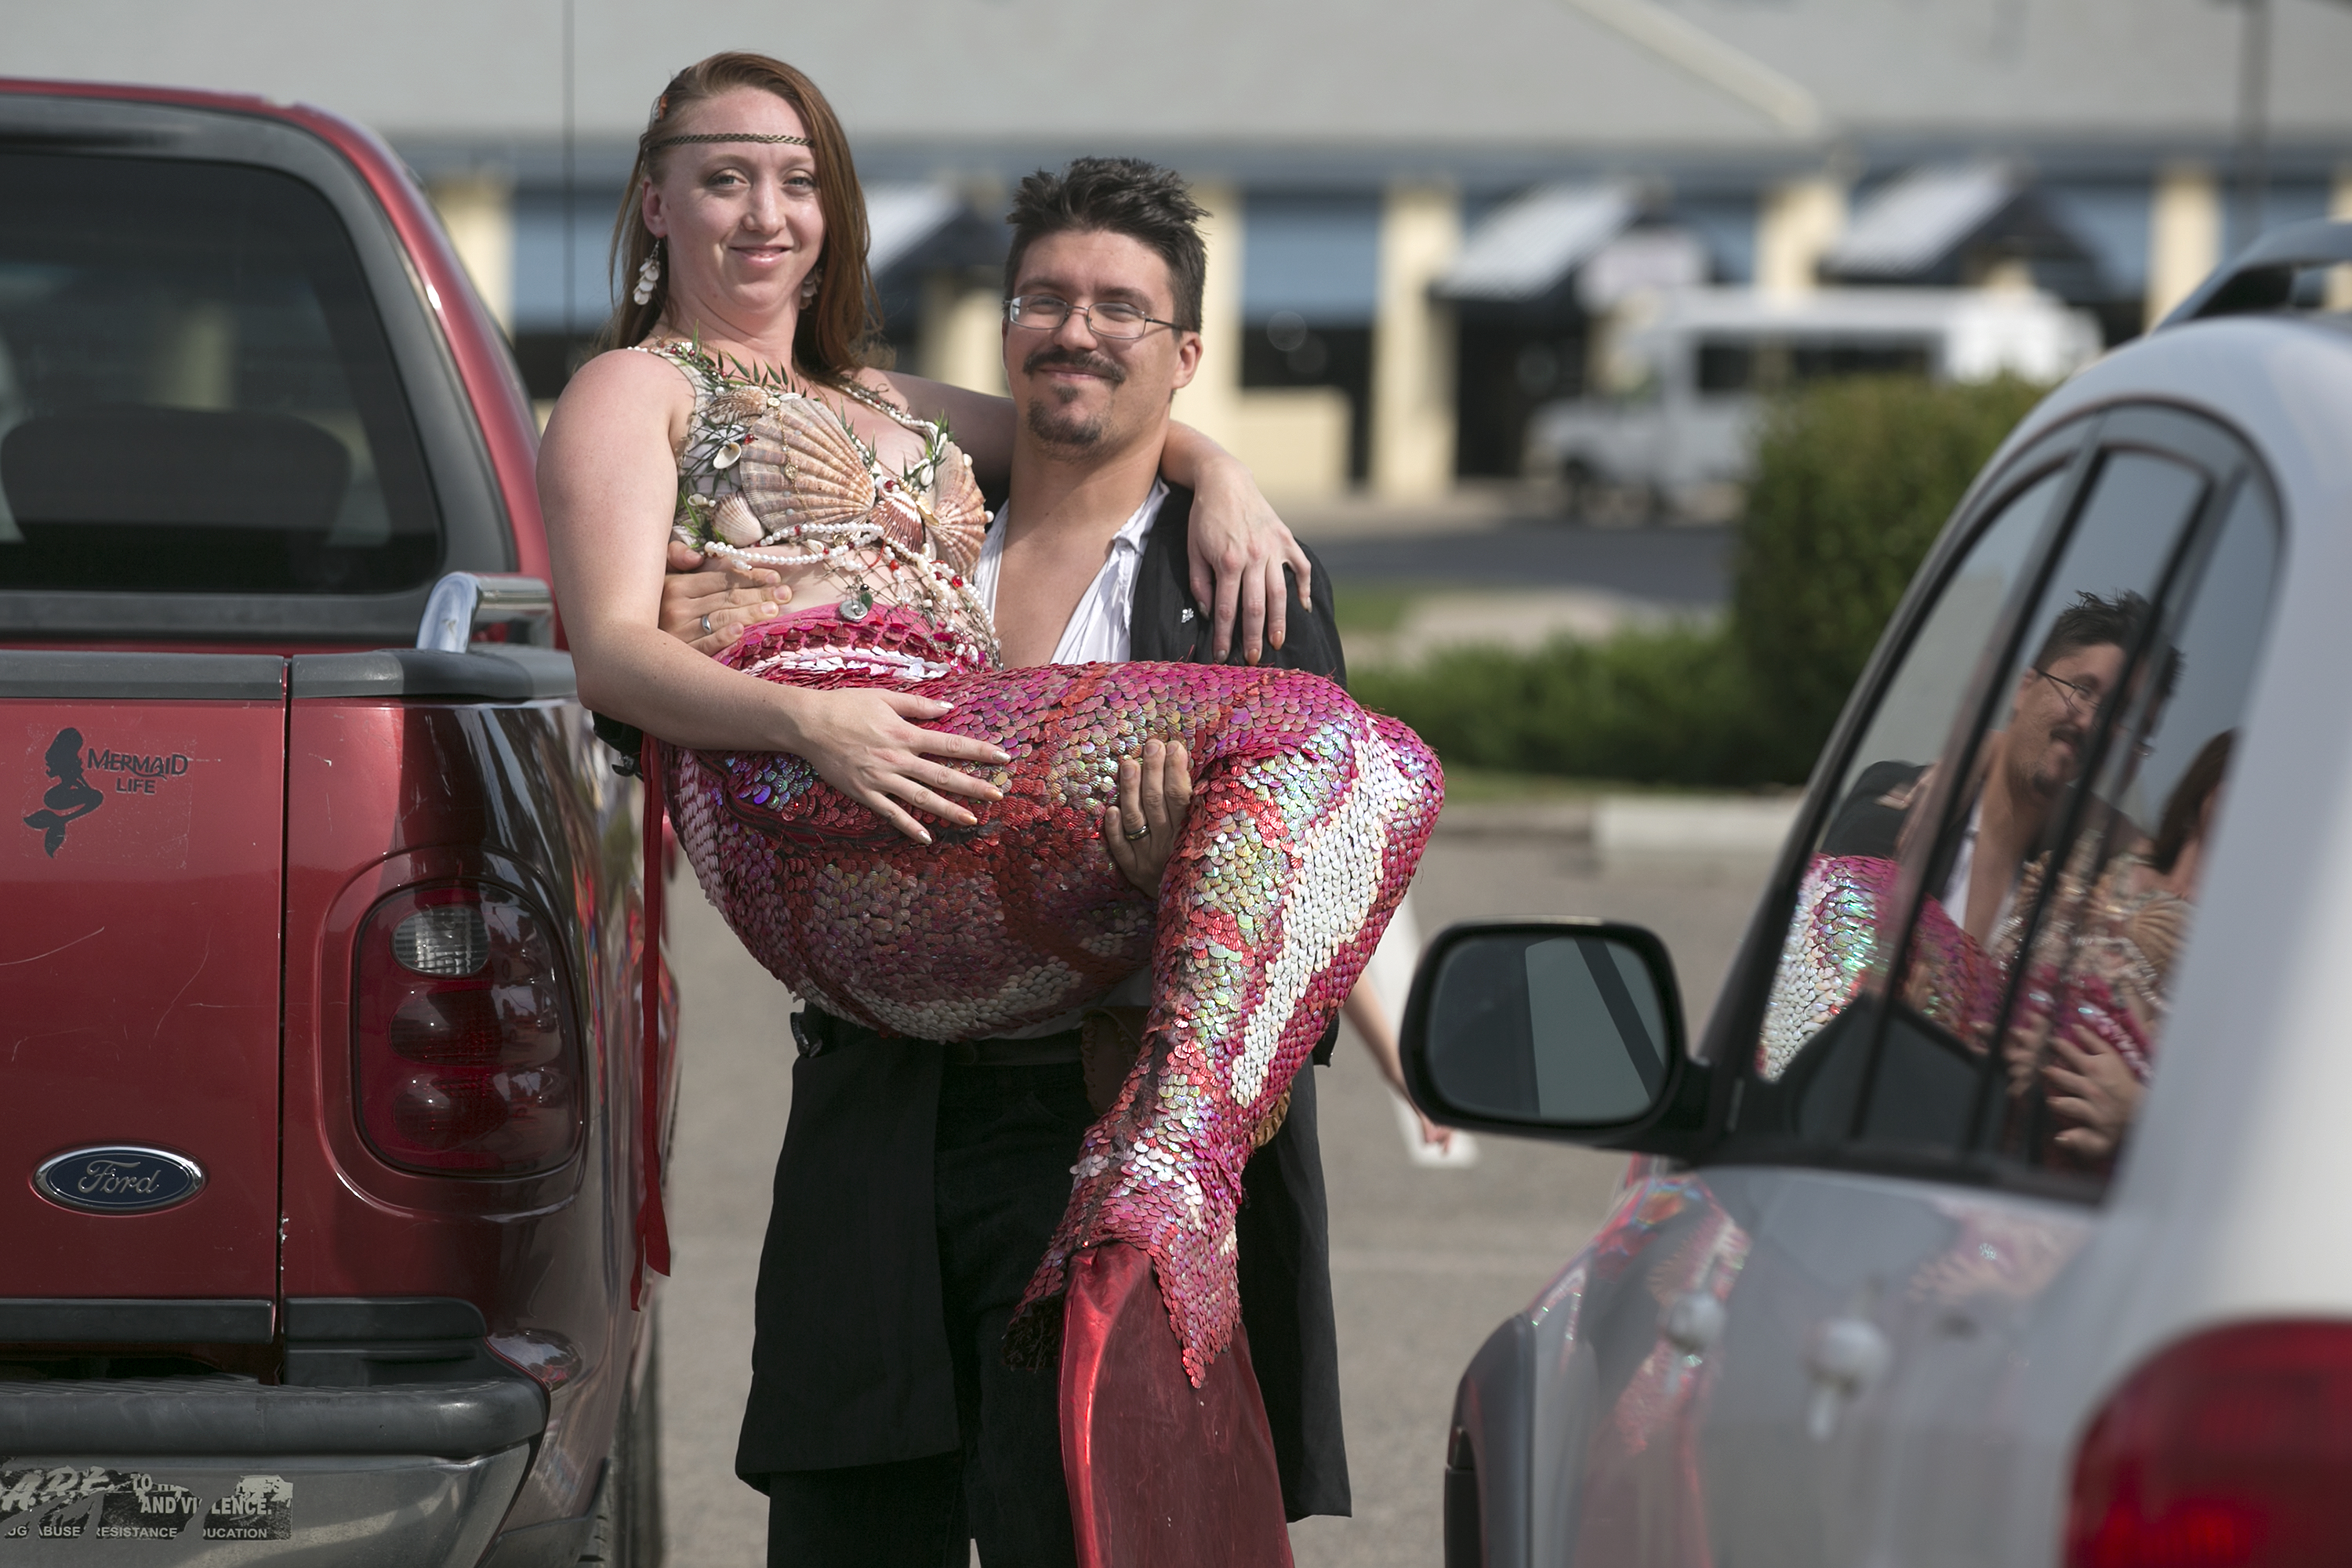 <p>Pixy Wright is founder of Pueblo's Mermaid Lagoon. And, because the tail prevents her from walking, she was carried into the CPR News studiosby herhusband, Bill Wright. And he is dressed as a pirate.</p>